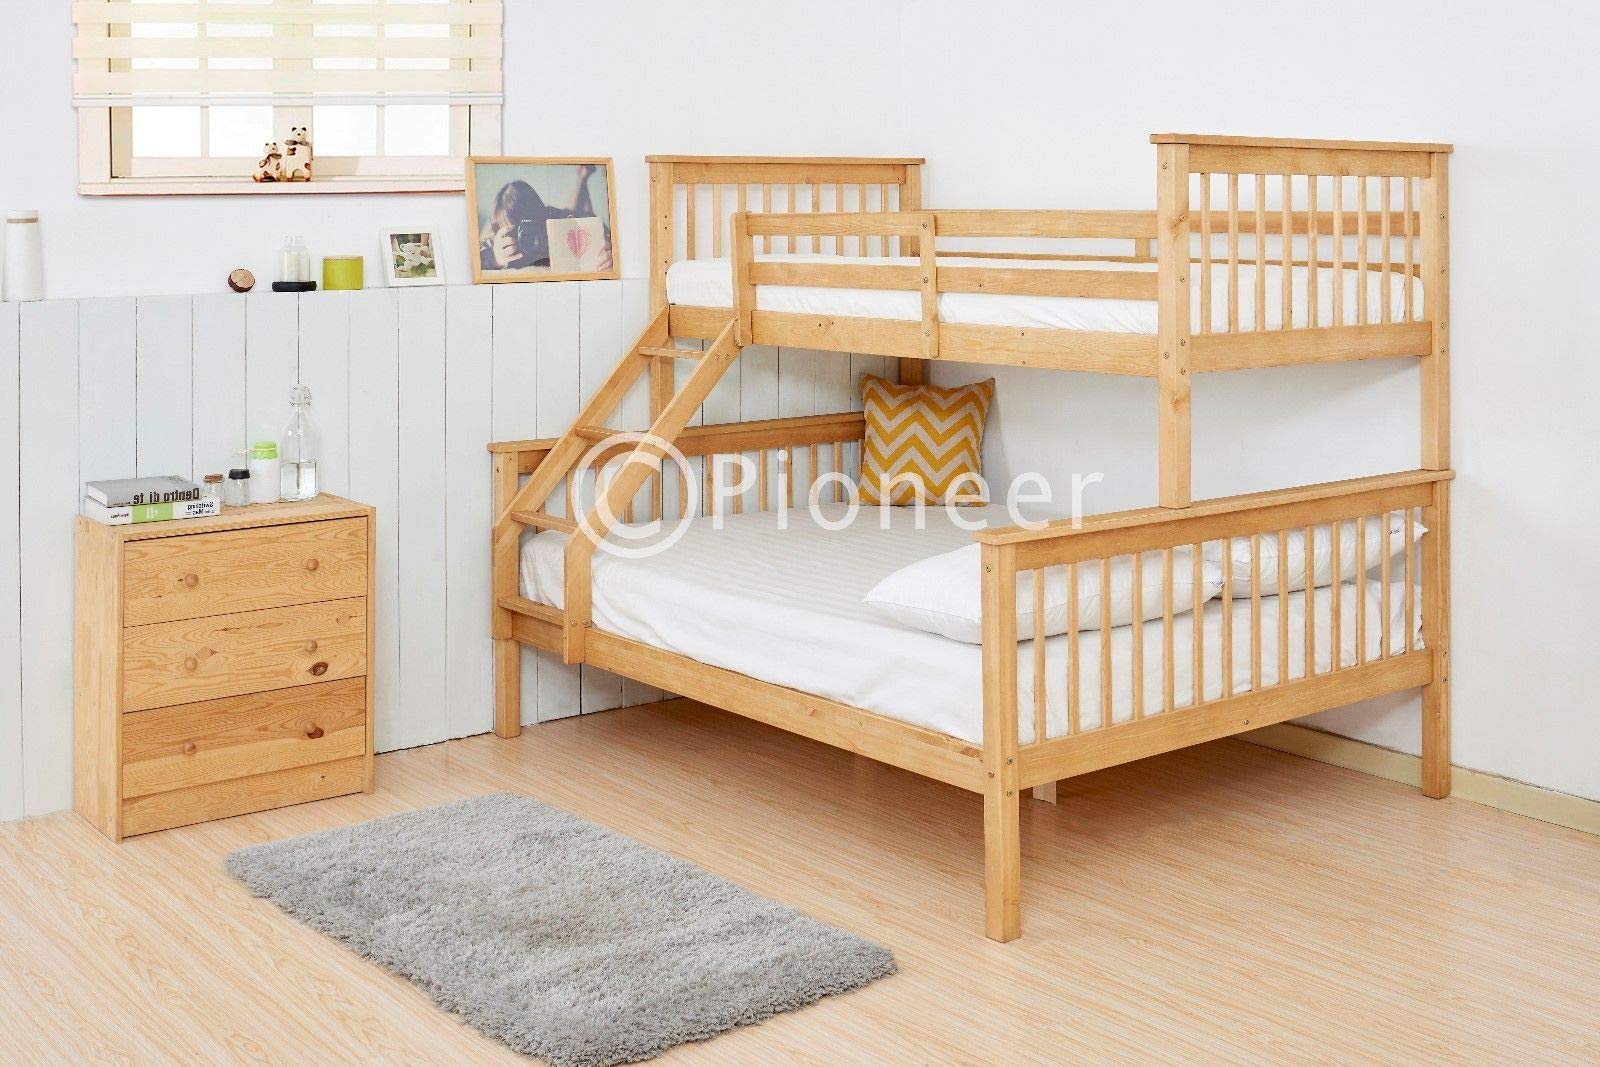 Pioneer Triple Bunk Bed Kids Beds Adults Beds In Oak Colour Bunk Bed For Kids Buy Online In Guernsey At Guernsey Desertcart Com Productid 157860522